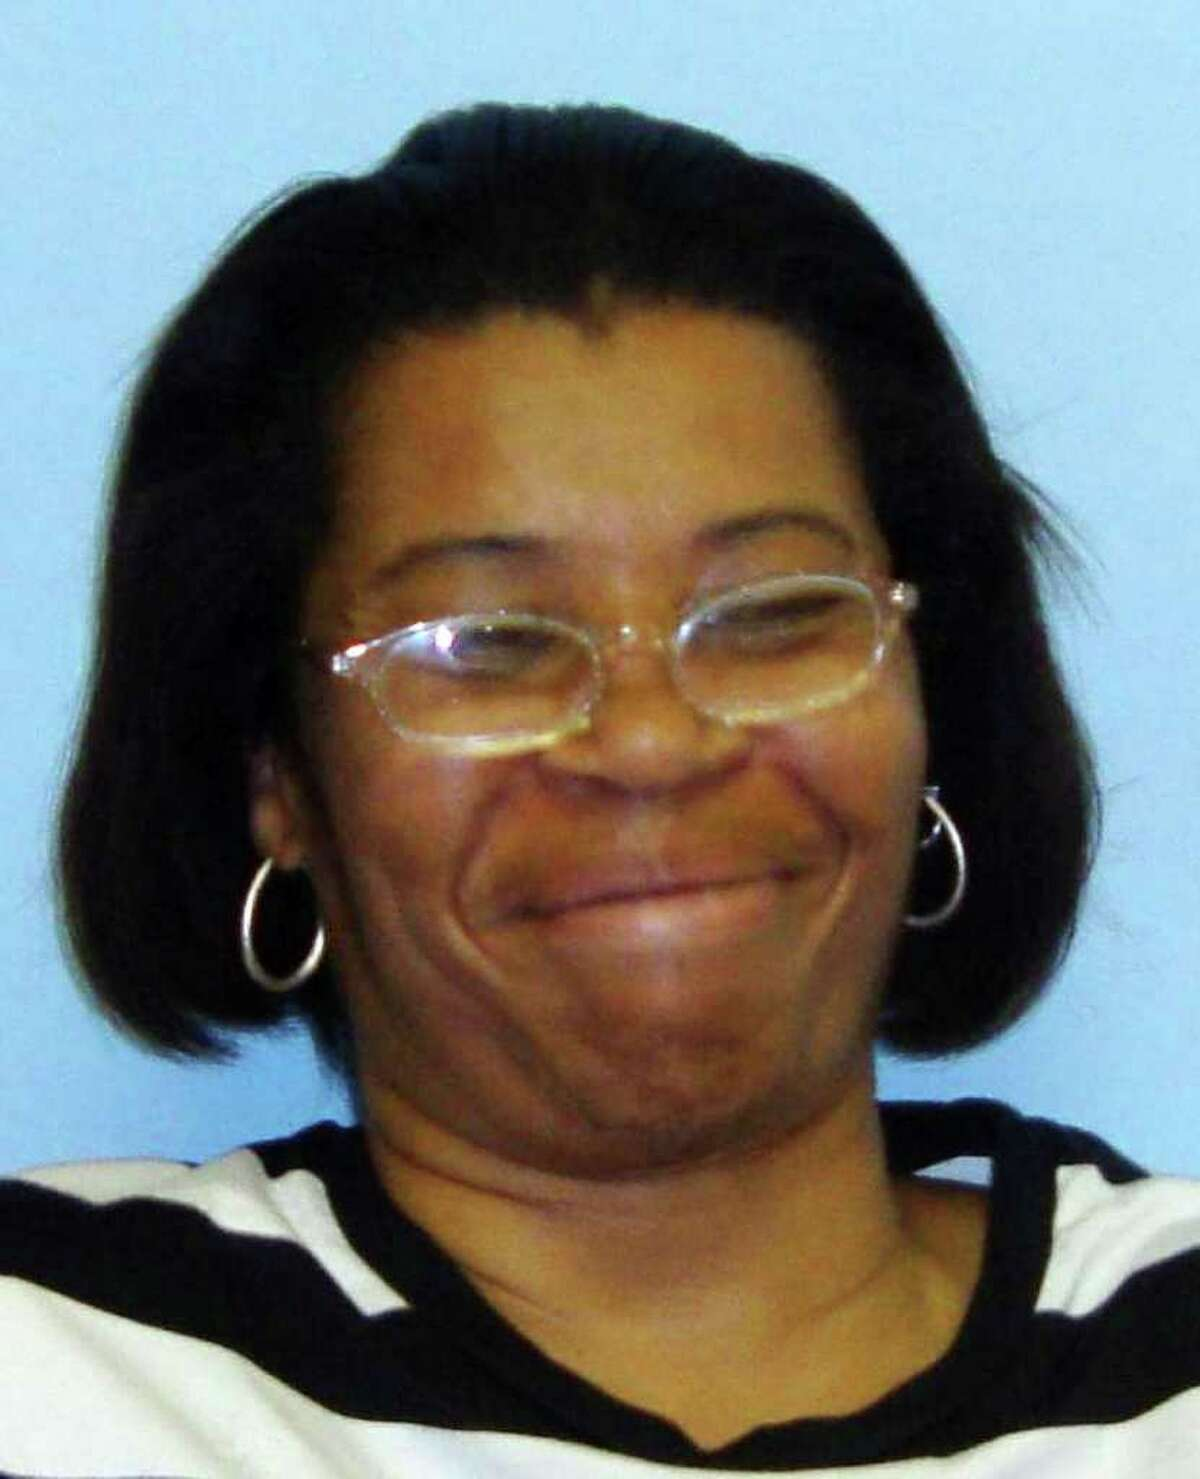 In this undated photo provided by the North Carolina Department of Correction, Ann Pettway is shown. Pettway, the woman who raised a child kidnapped from a New York hospital two decades ago has violated her probation and is believed to be on the run from authorities, North Carolina officials said Friday, Jan. 21, 2011. A warrant was issued for her arrest. (AP Photo/NC Department of Correction)